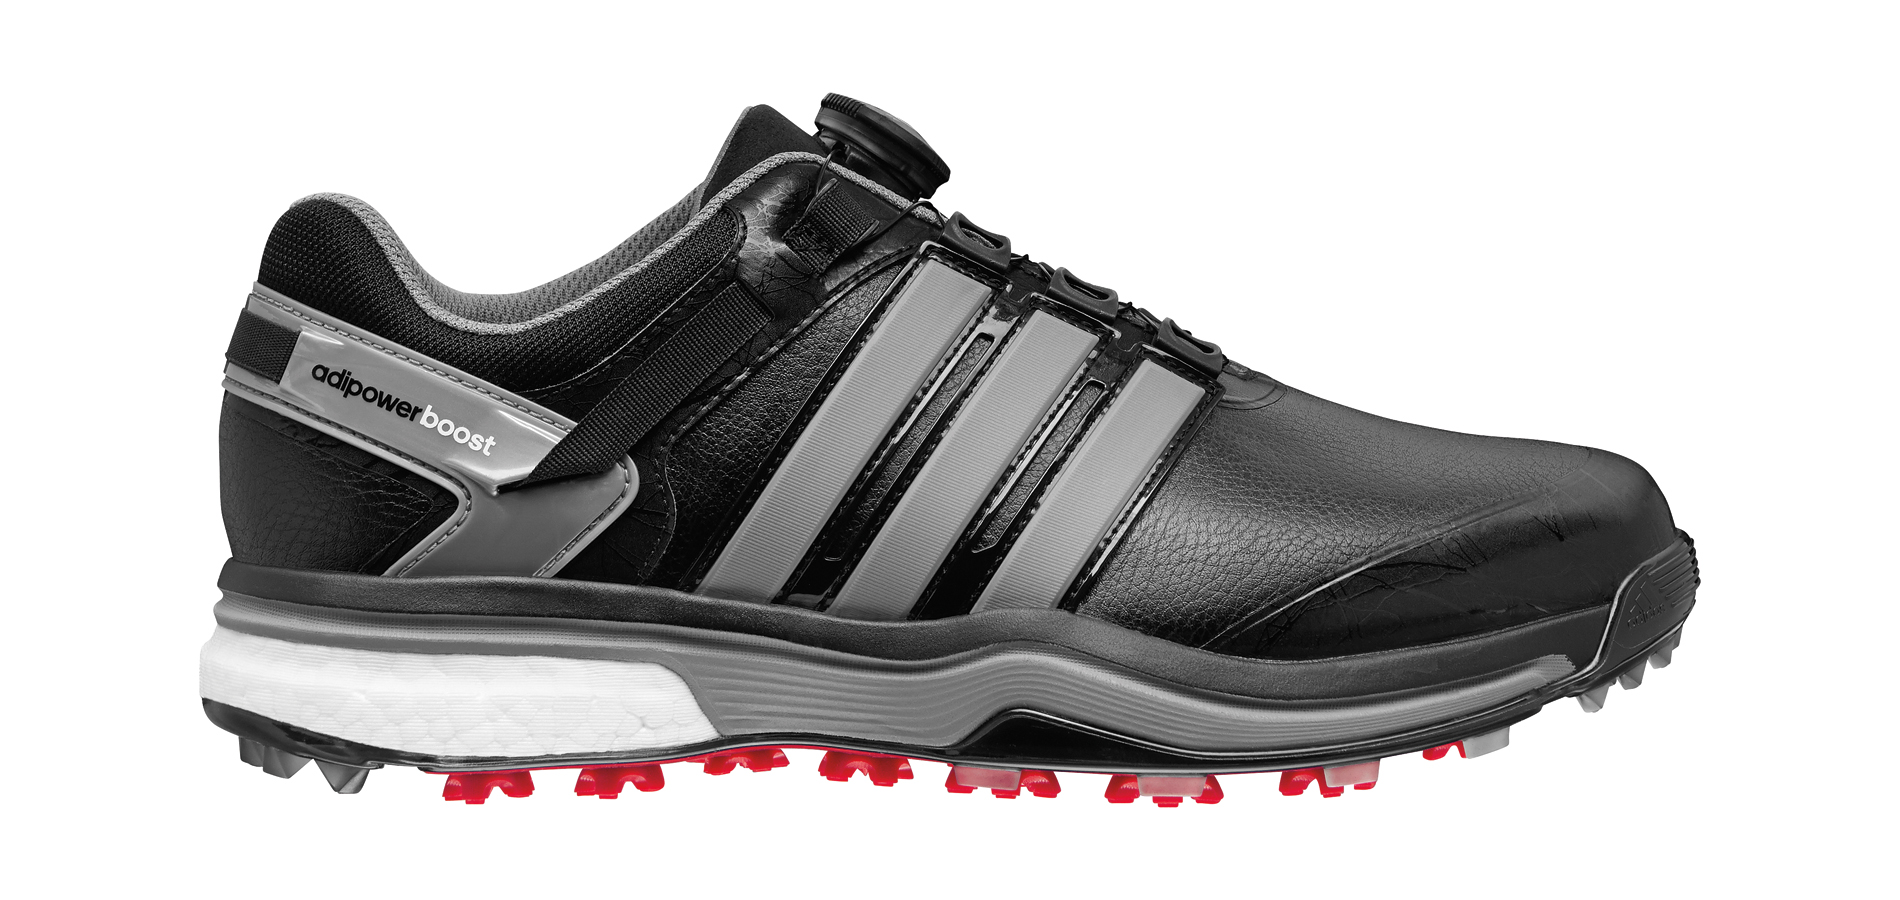 online retailer 6e32b ca3ad 23 Aug adipower Boost Shoes from adidas Golf